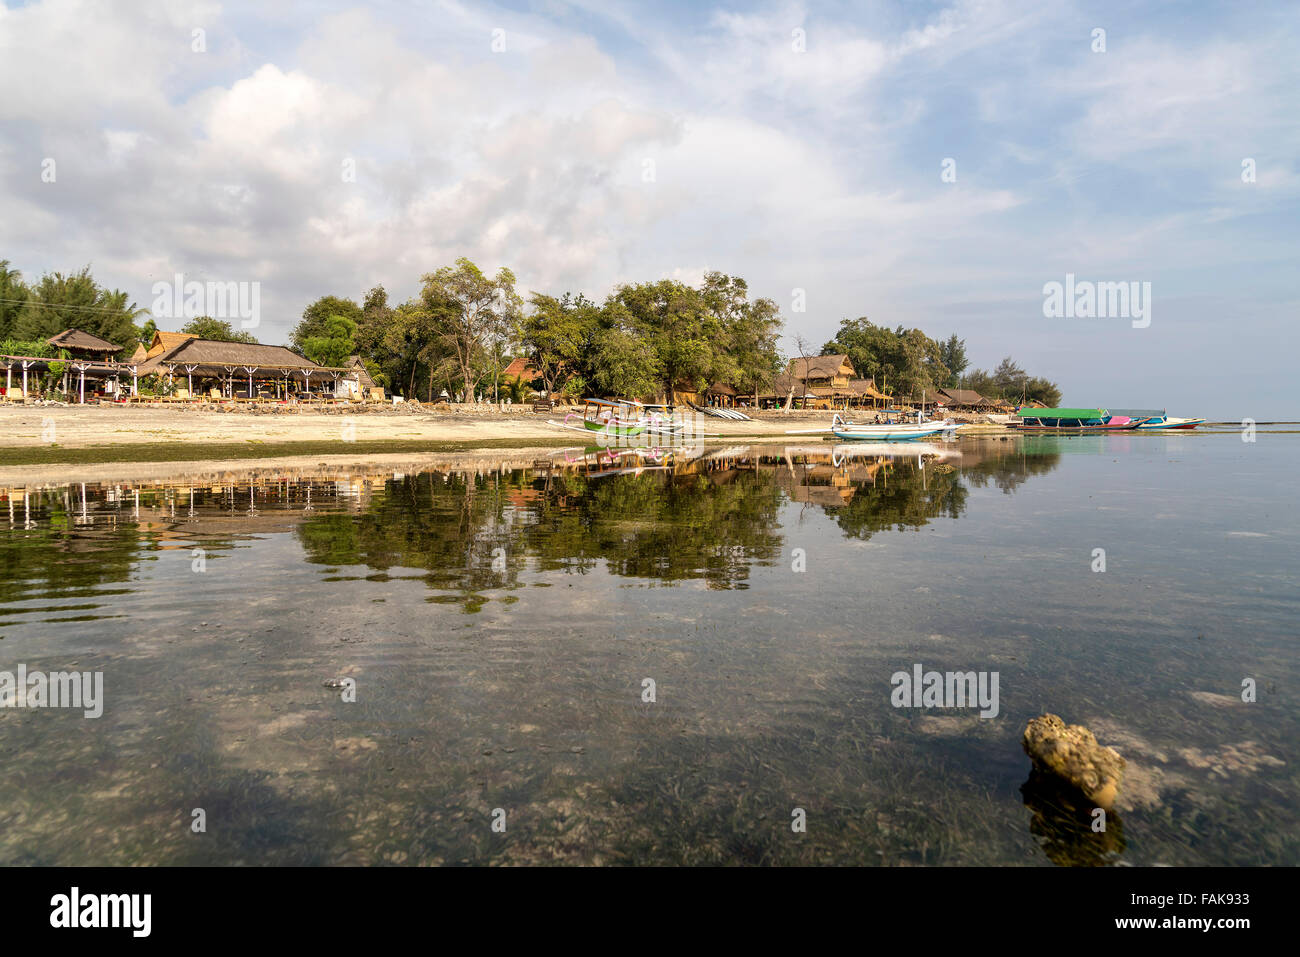 the small island Gili Air, Lombok, Indonesia, Asia - Stock Image